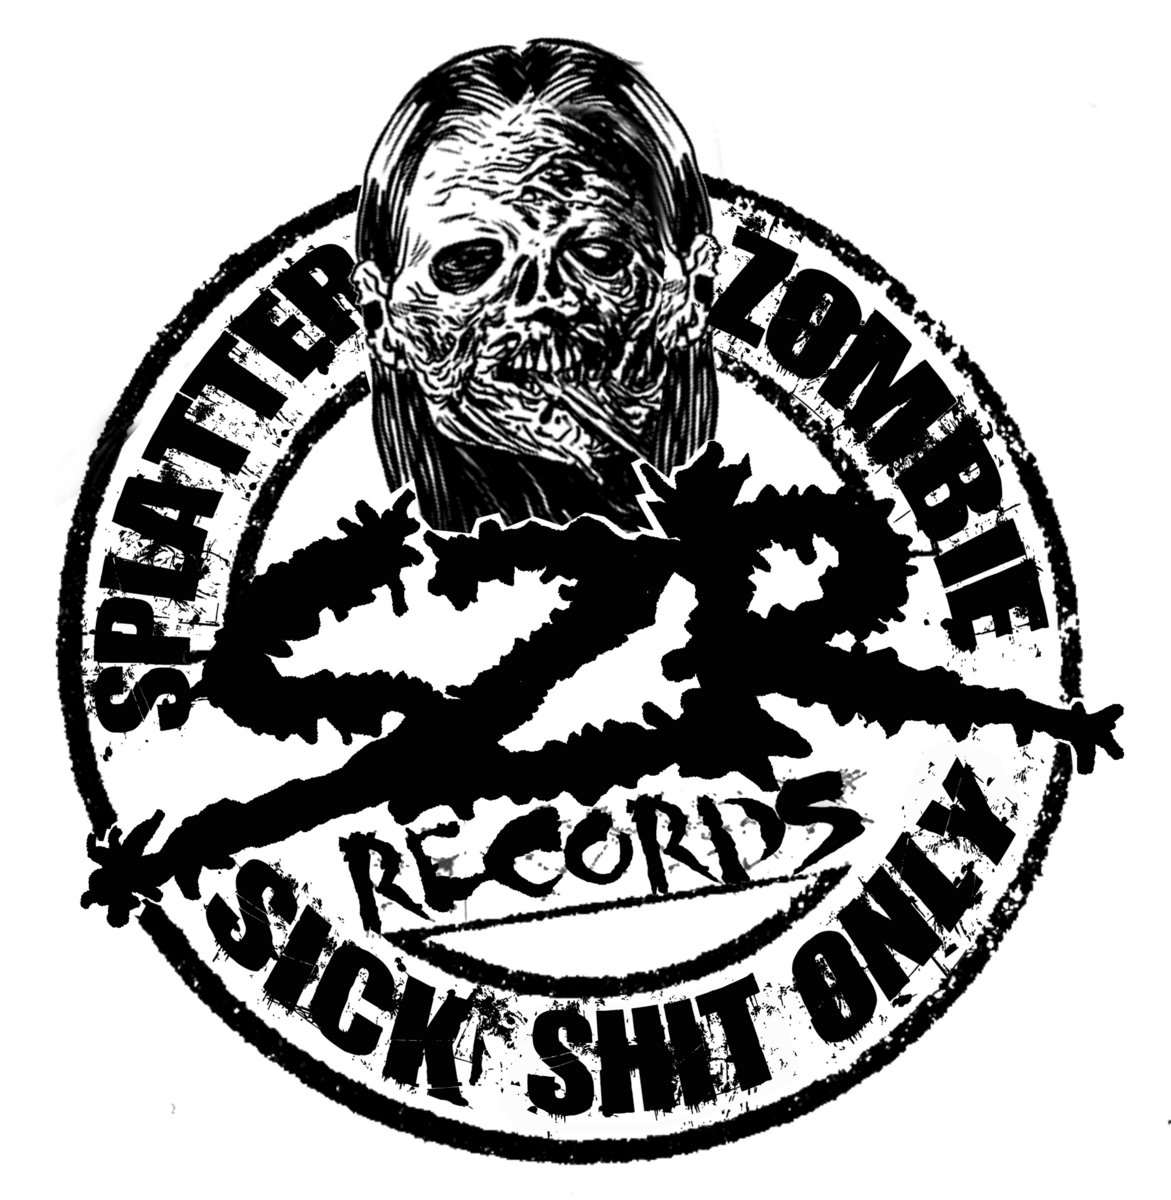 screaming mad gore splatter zombie records Radioactive Sign splatter zombie records image